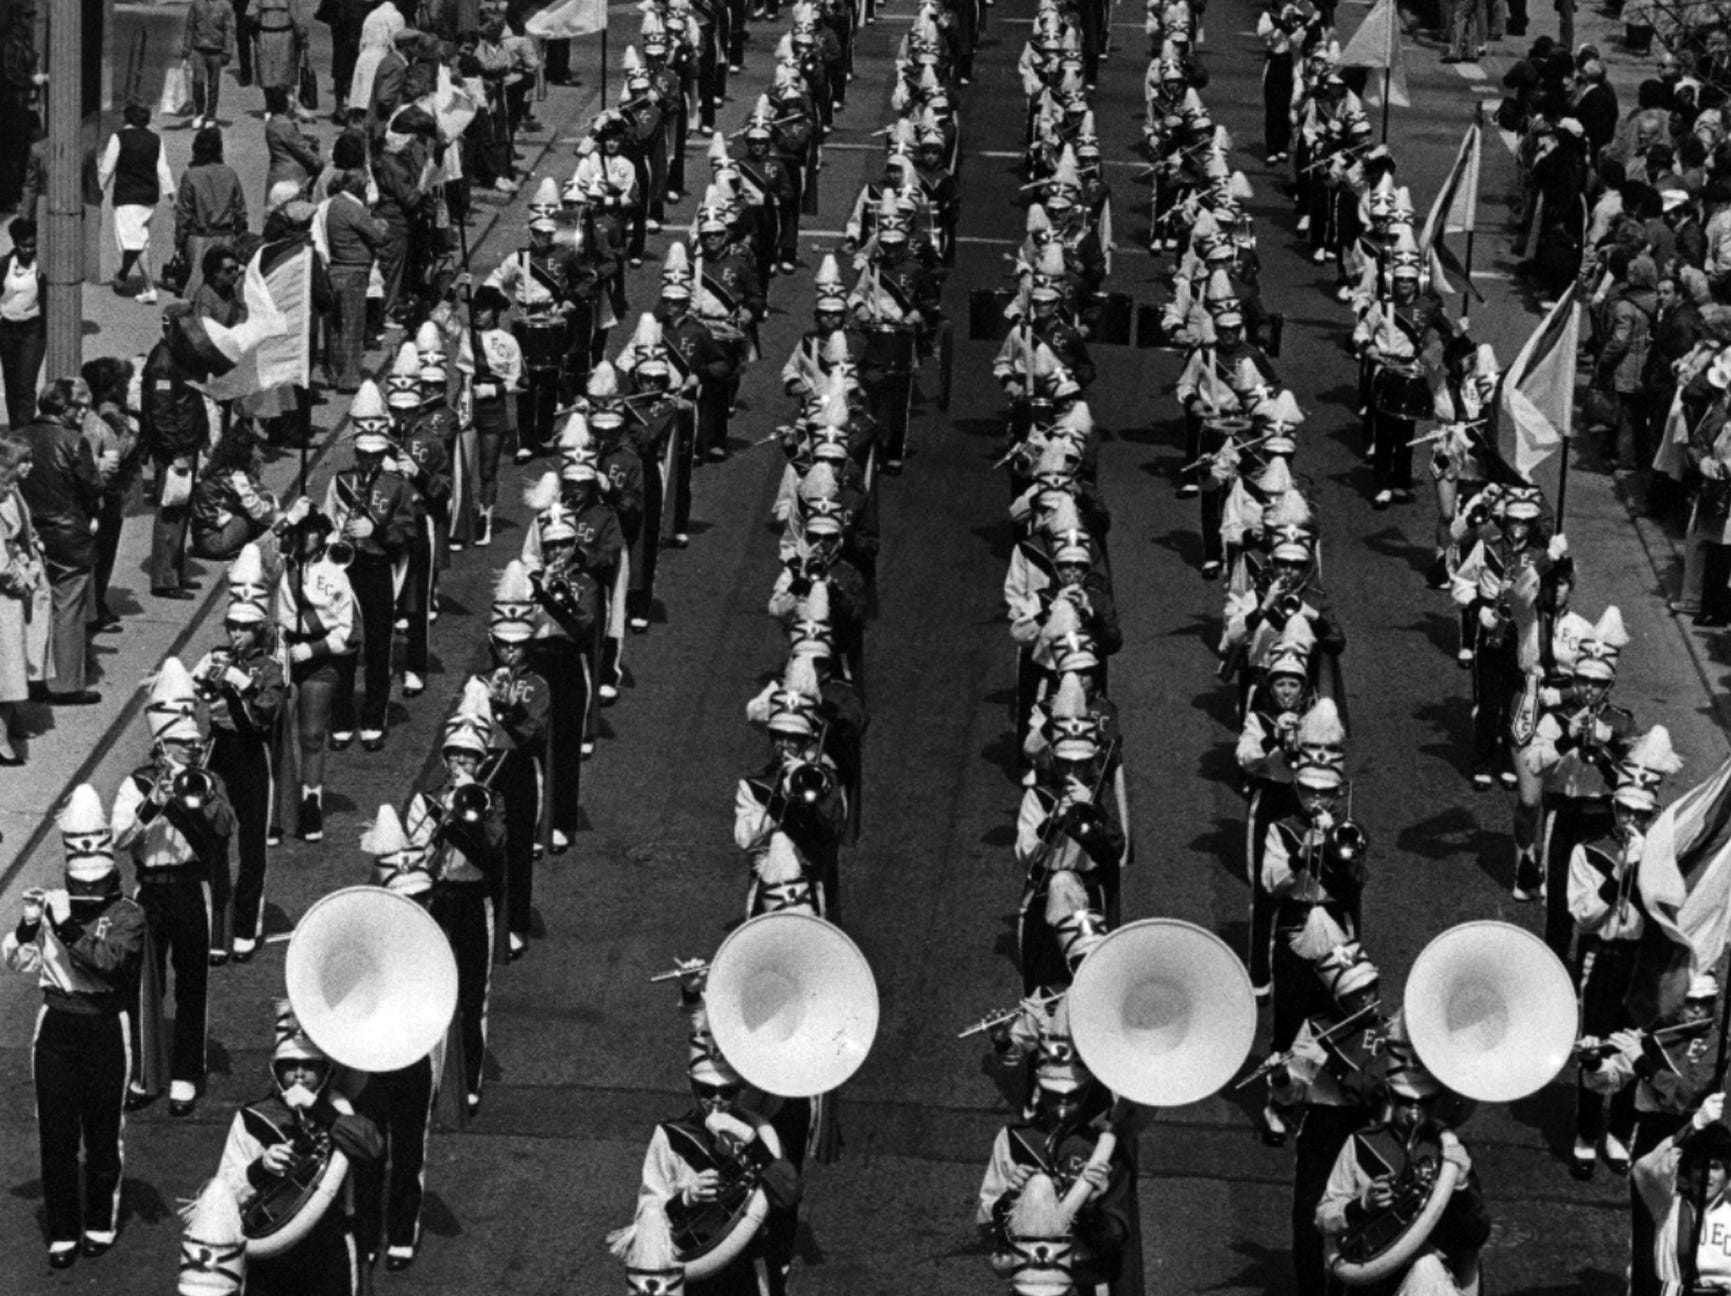 April 3, 1984: No rain fell on the annual Opening Day Parade from Findlay Market to Riverfront Stadium, Under beautiful skies, the East Central High School band of Indiana belts out a tune on Race Street. Later, the Reds belted out an 8-1 victory over the visiting New York Mets.